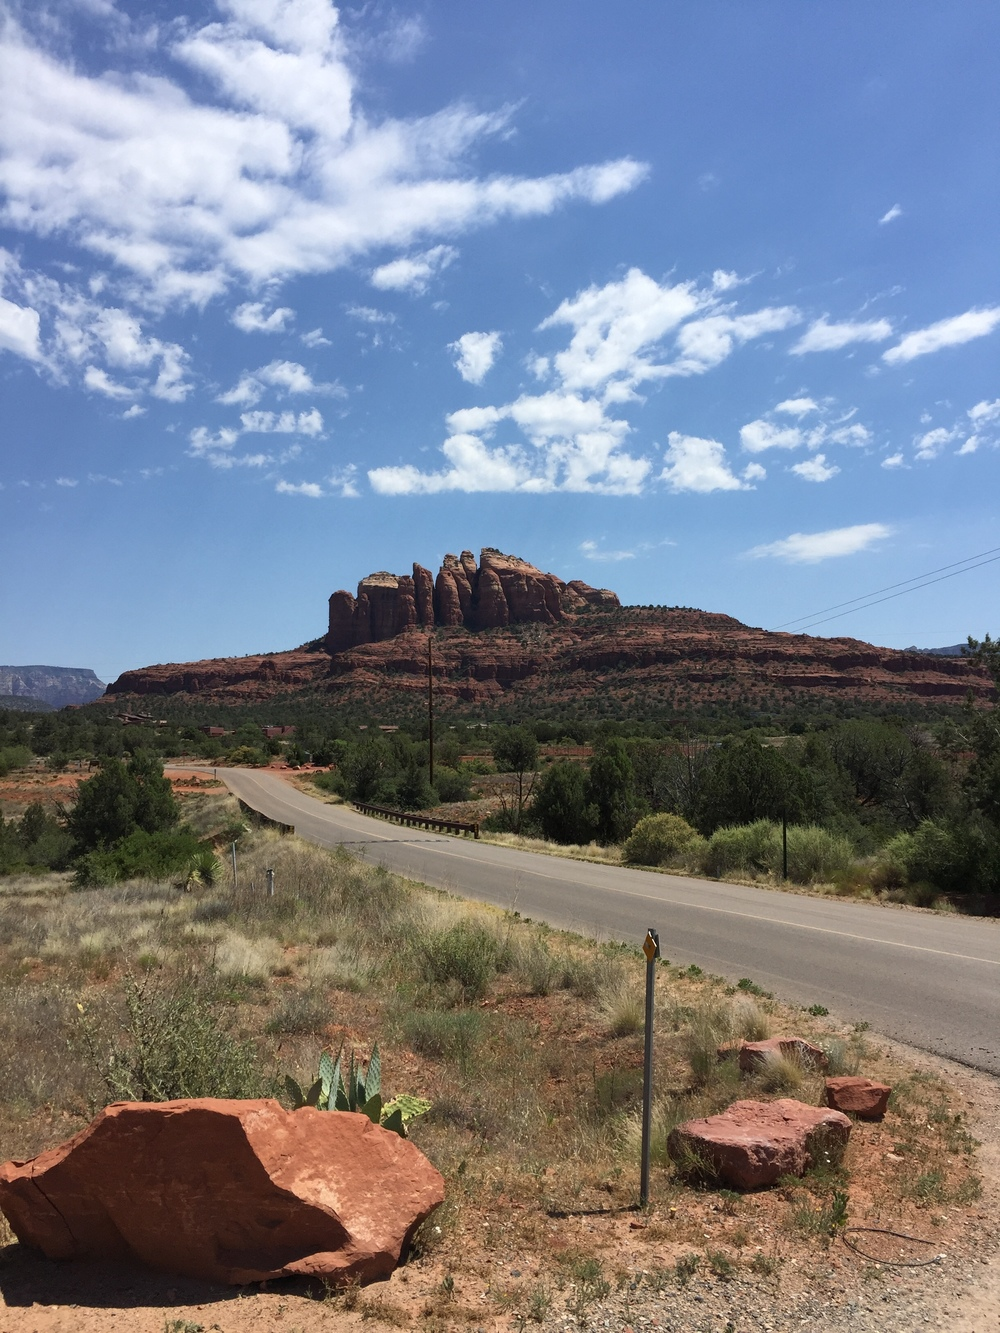 Picturesque landscape of Sedona, Arizona. Photo by Ryan Lammie, June 2016.